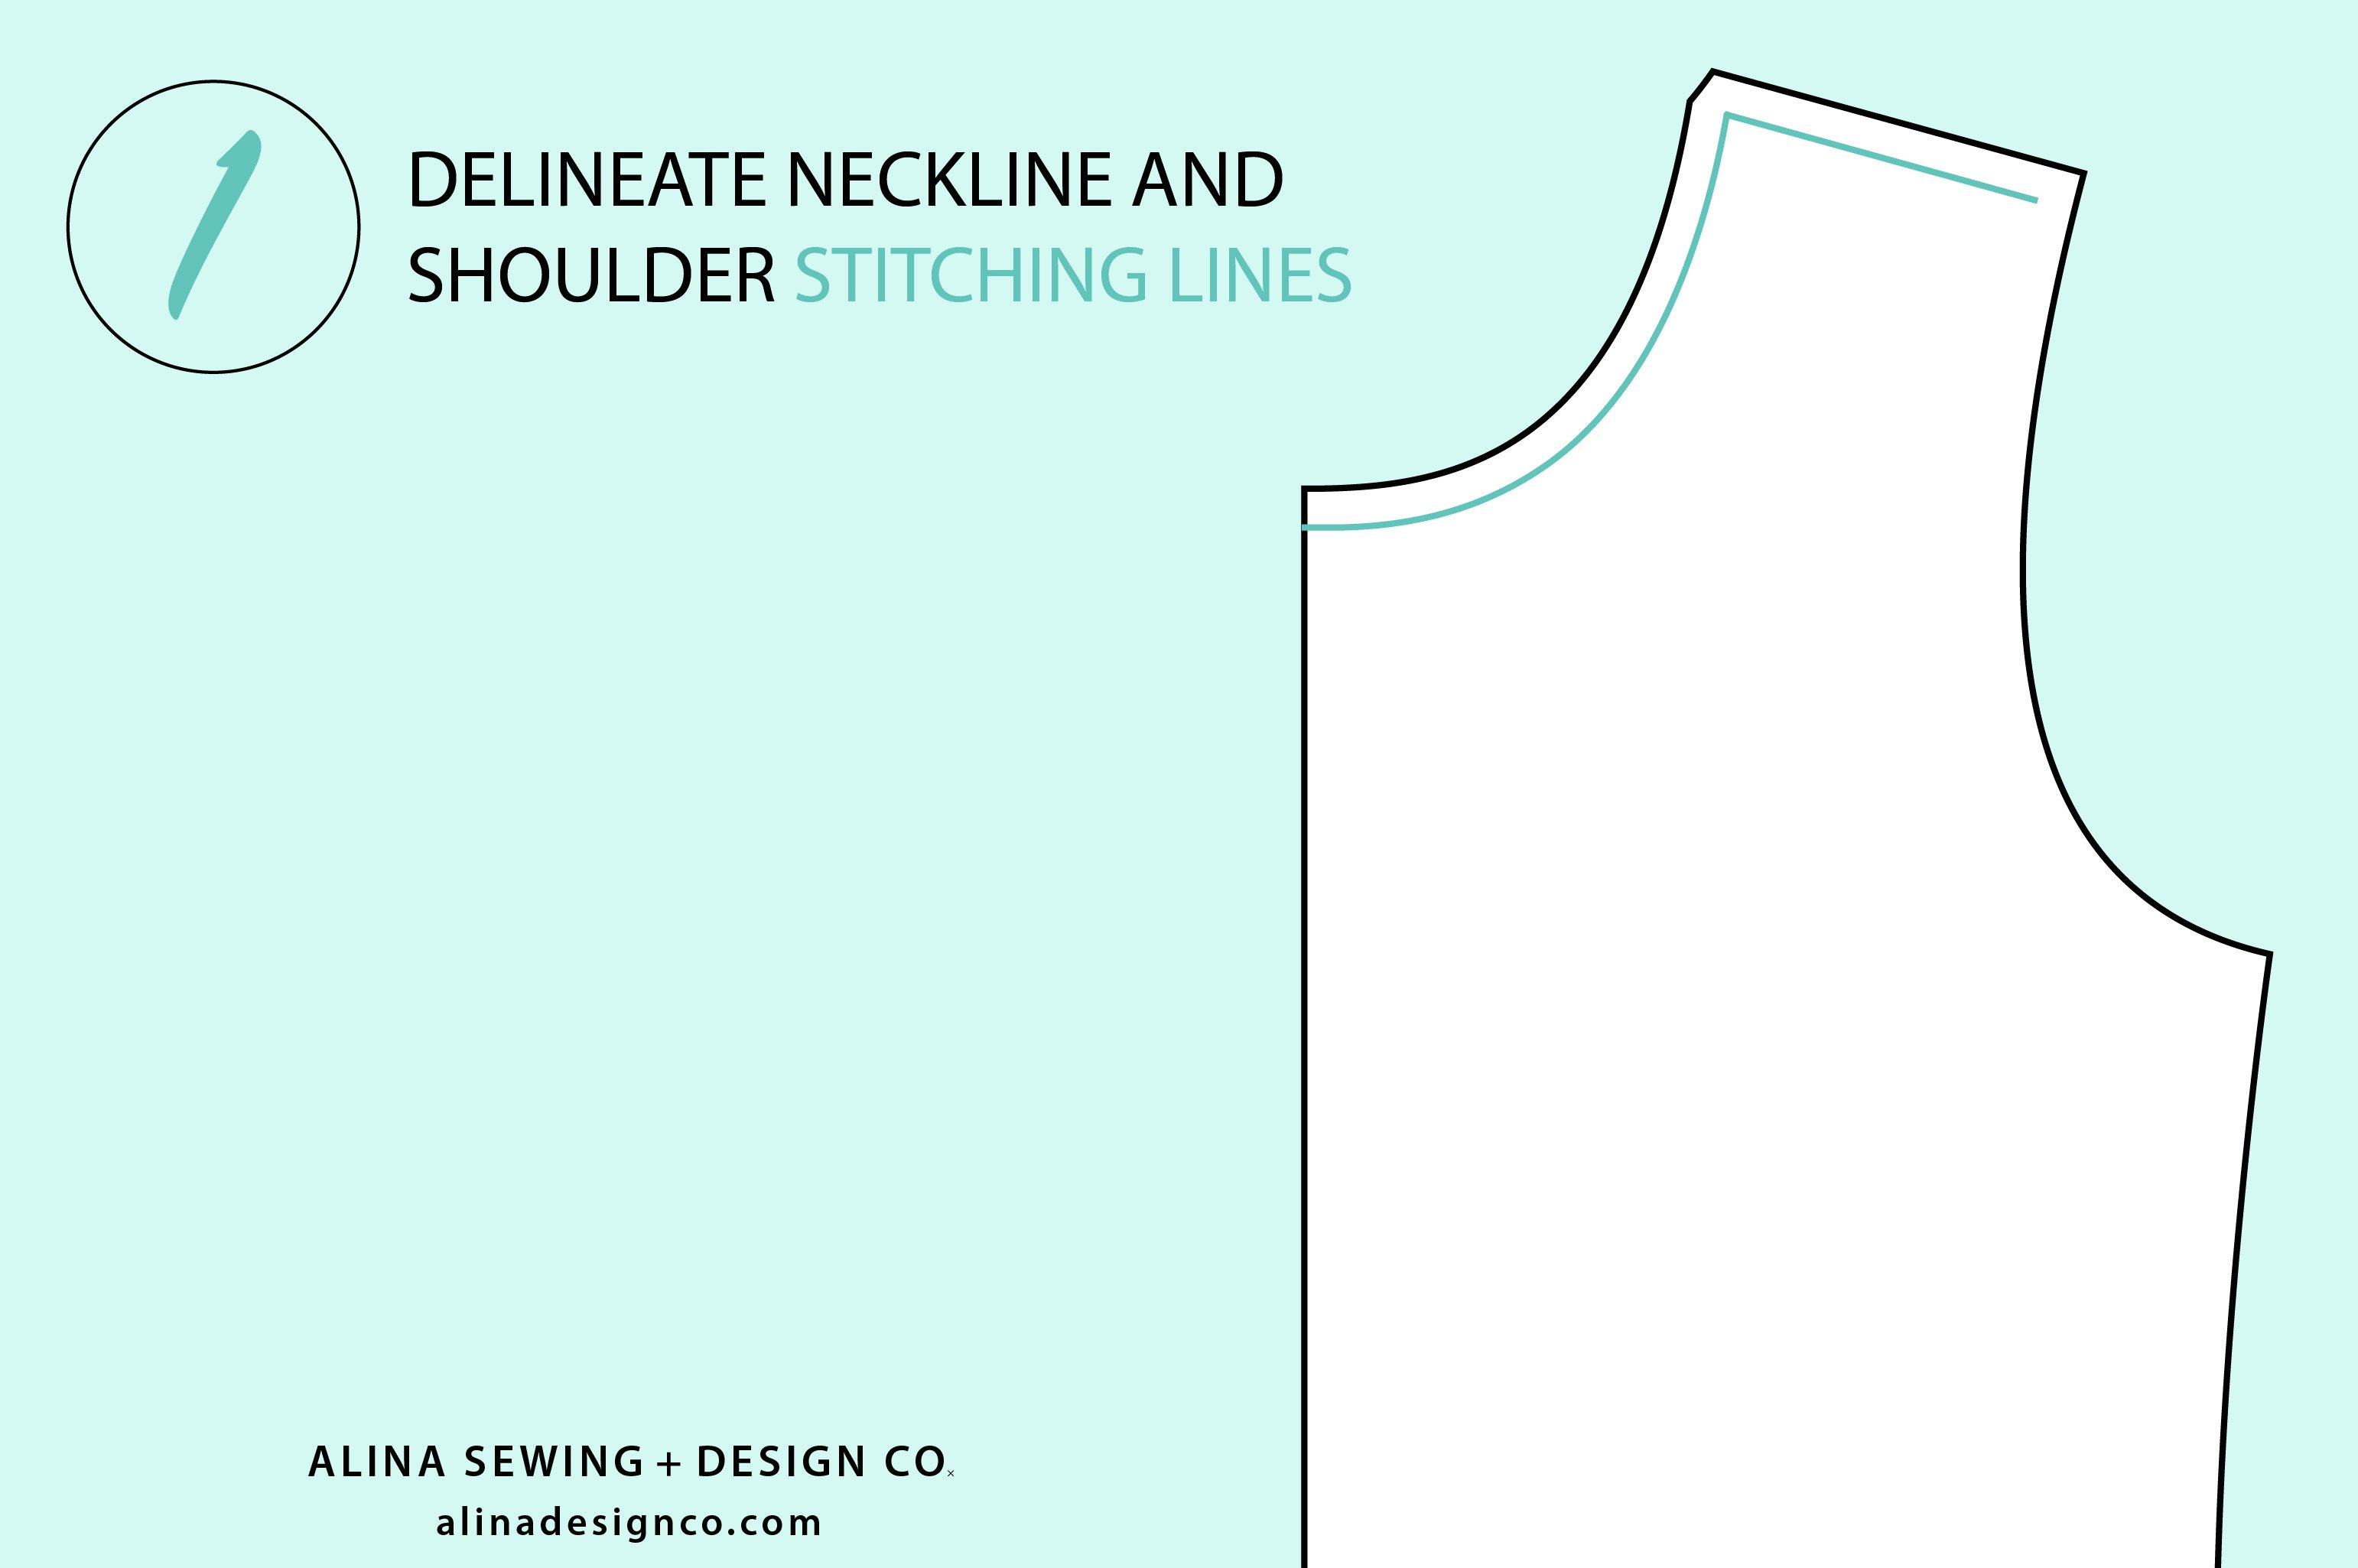 drafting-a-new-neckline-illustrations-01